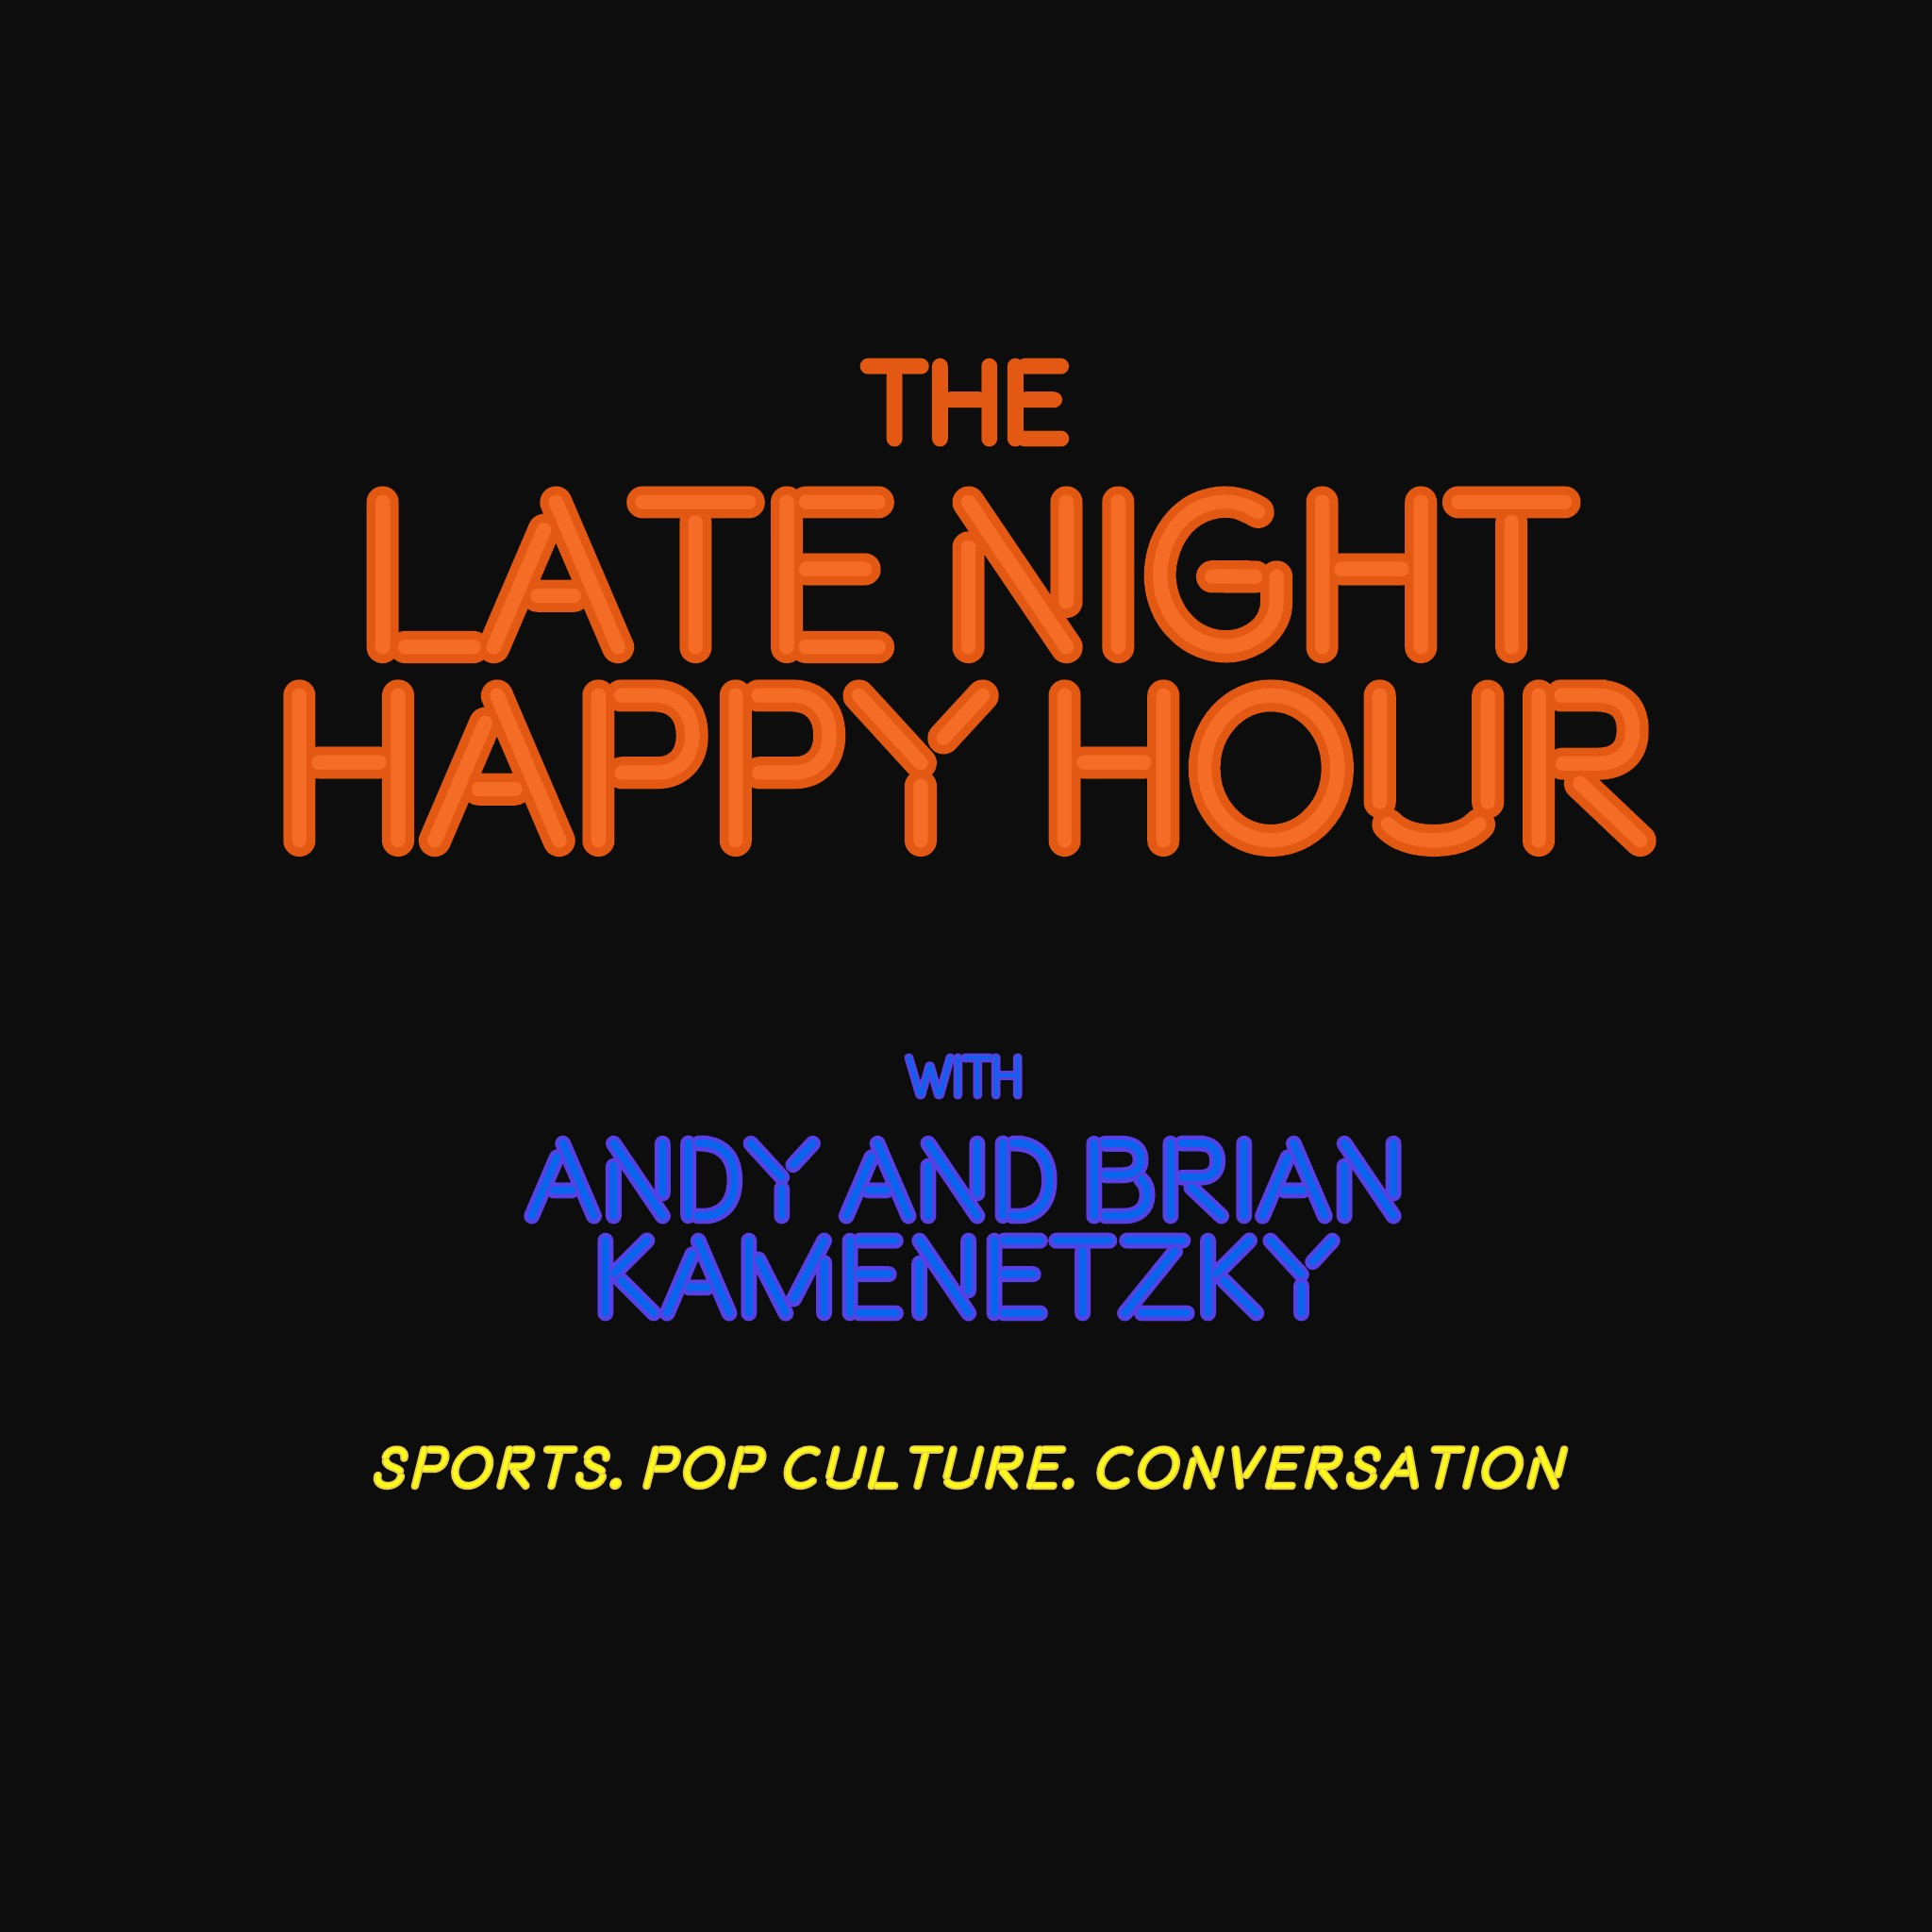 The Late Night Happy Hour with Andy and Brian Kamenetzky